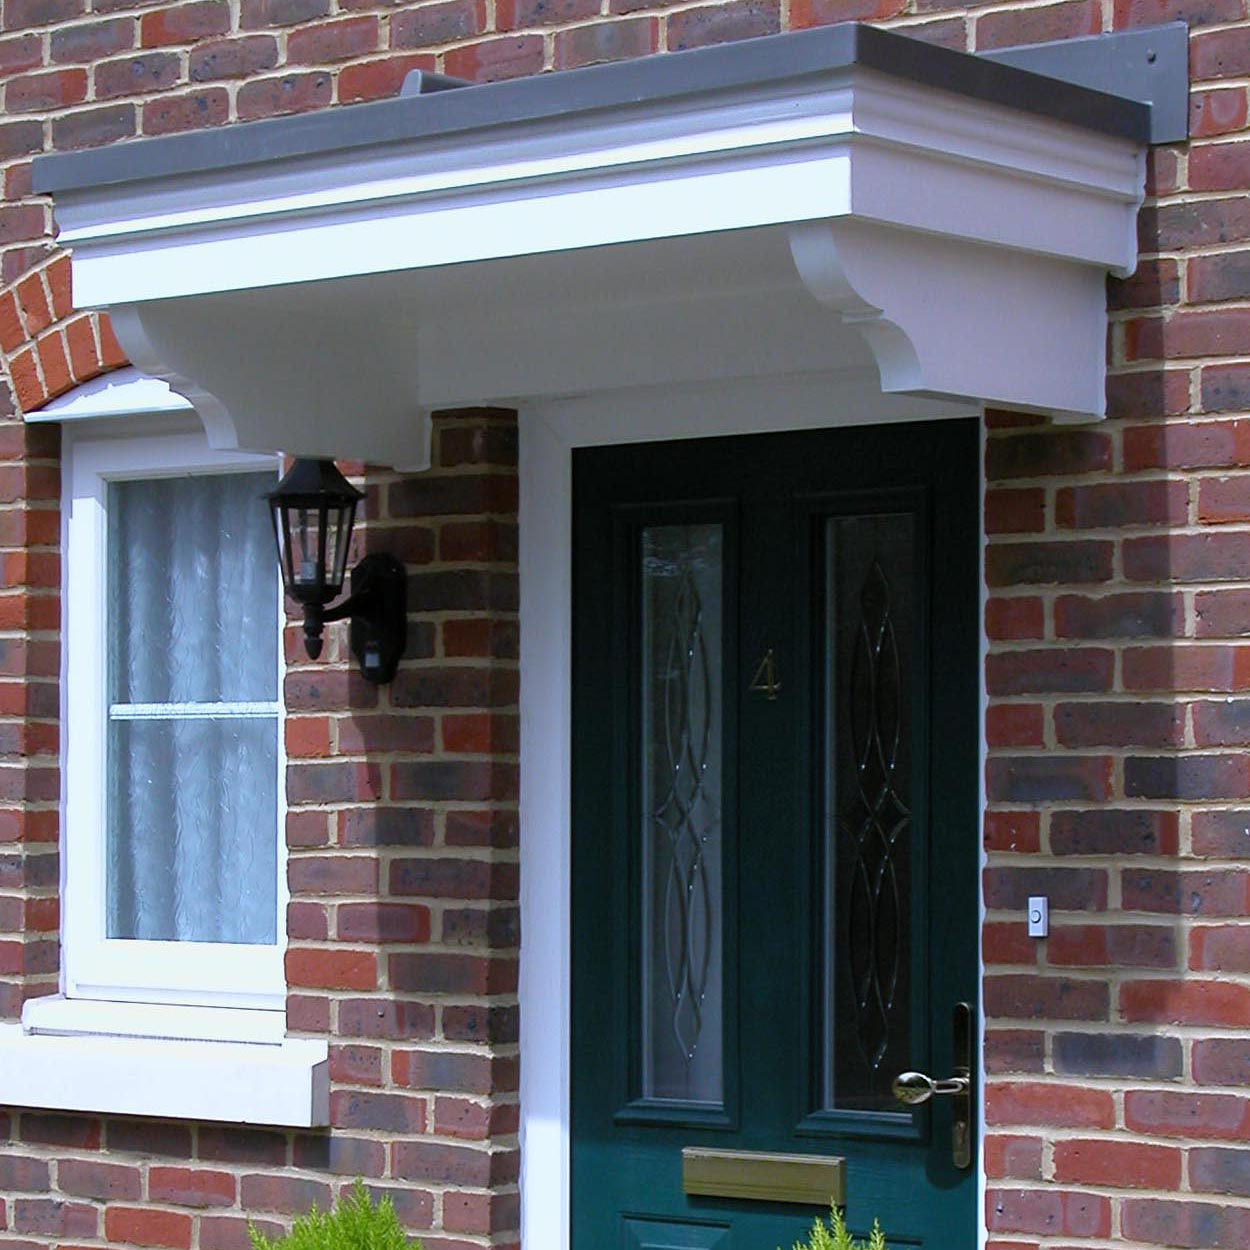 Ashton Wooden Door Canopy with lead look GRP roof  Width 1490mm x Projection 700mm - F-A4G